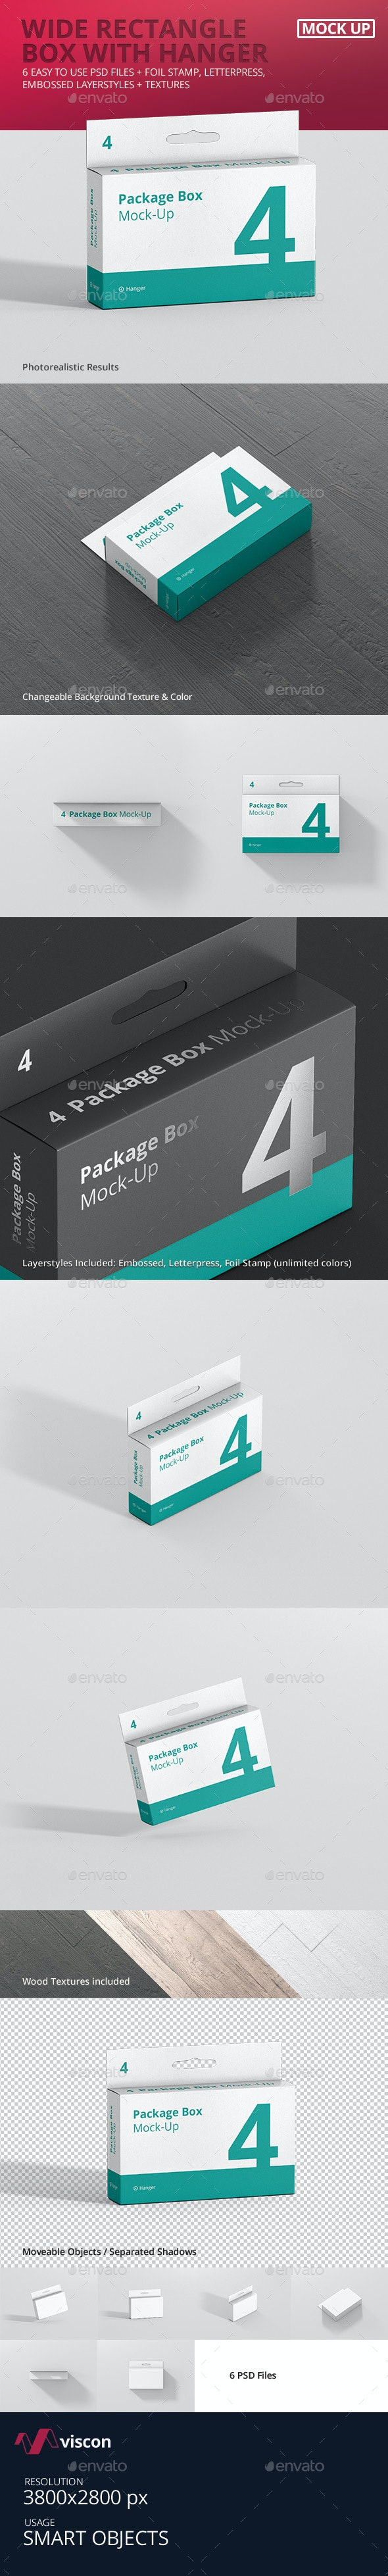 Package Box Mock-Up - Wide Rectangle with Hanger - Miscellaneous Packaging